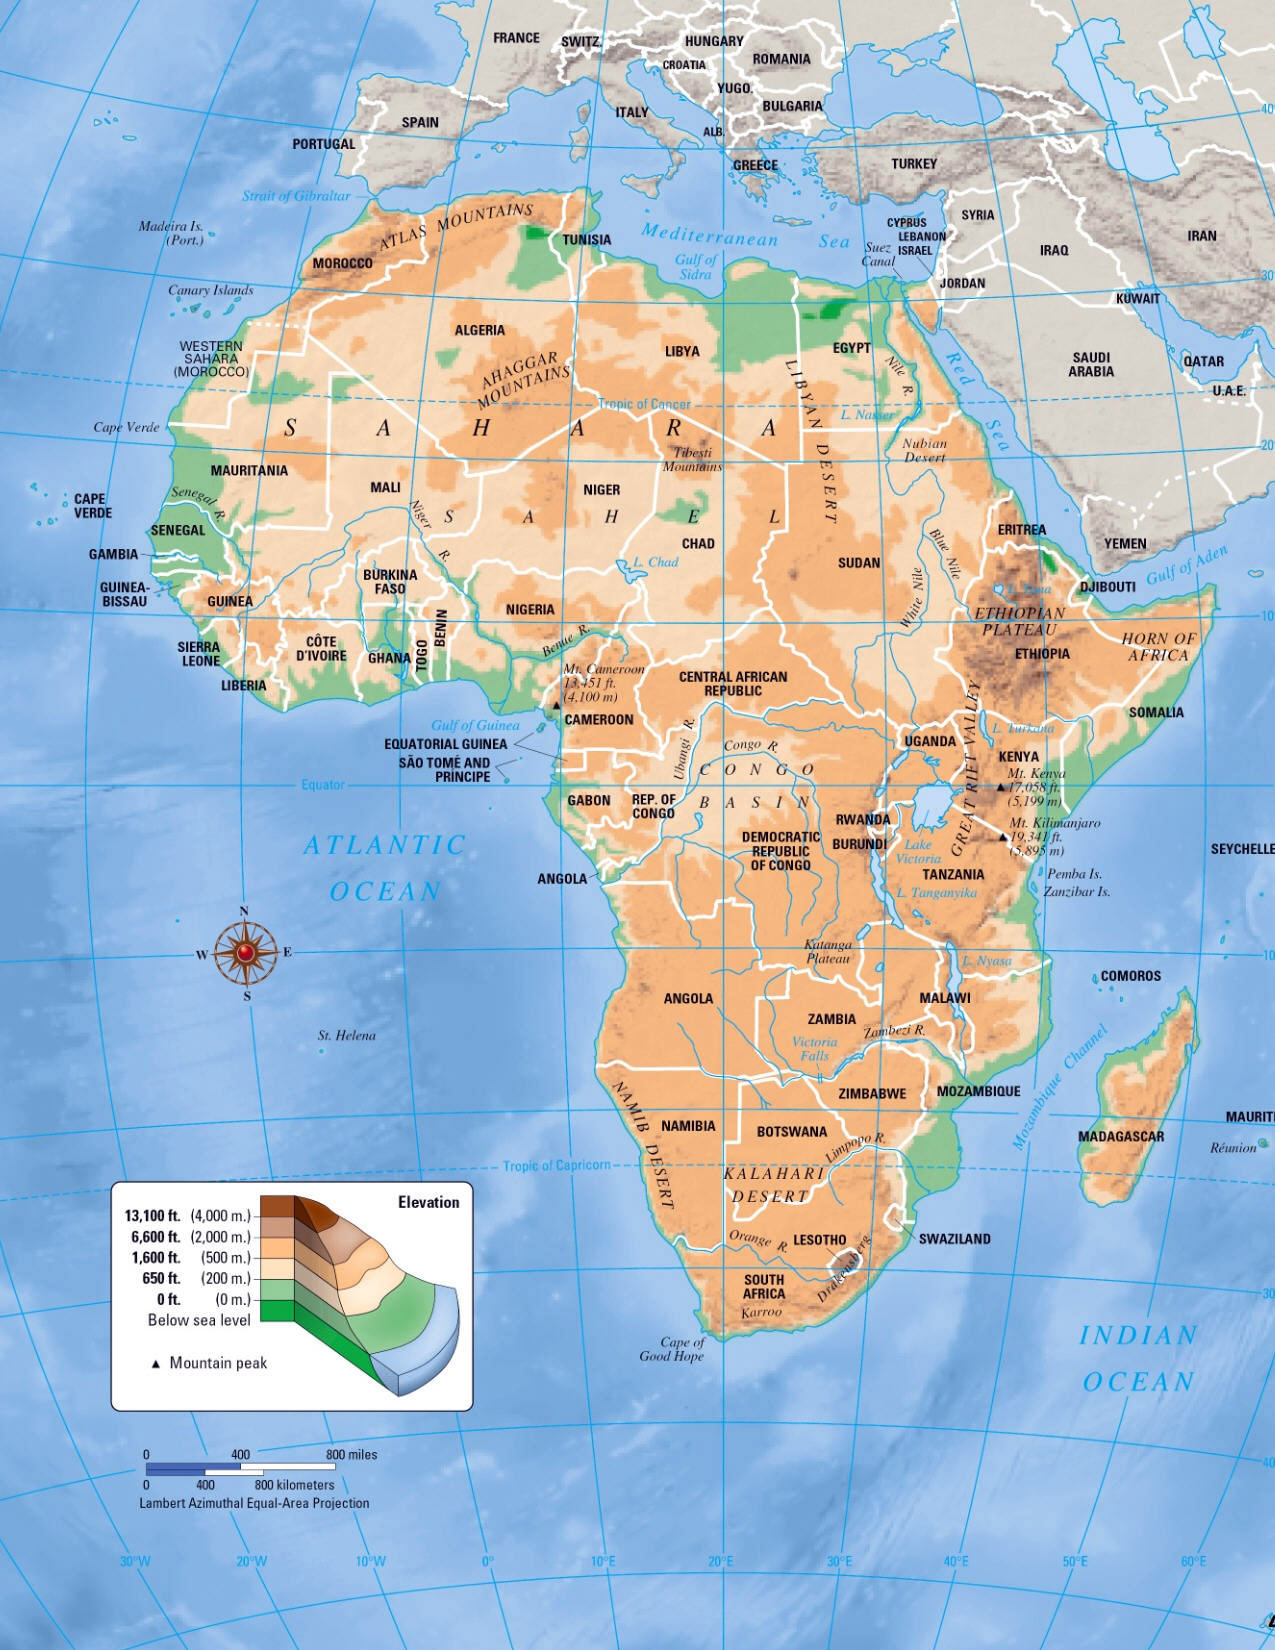 Large elevation map of africa africa mapsland maps of the world large elevation map of africa gumiabroncs